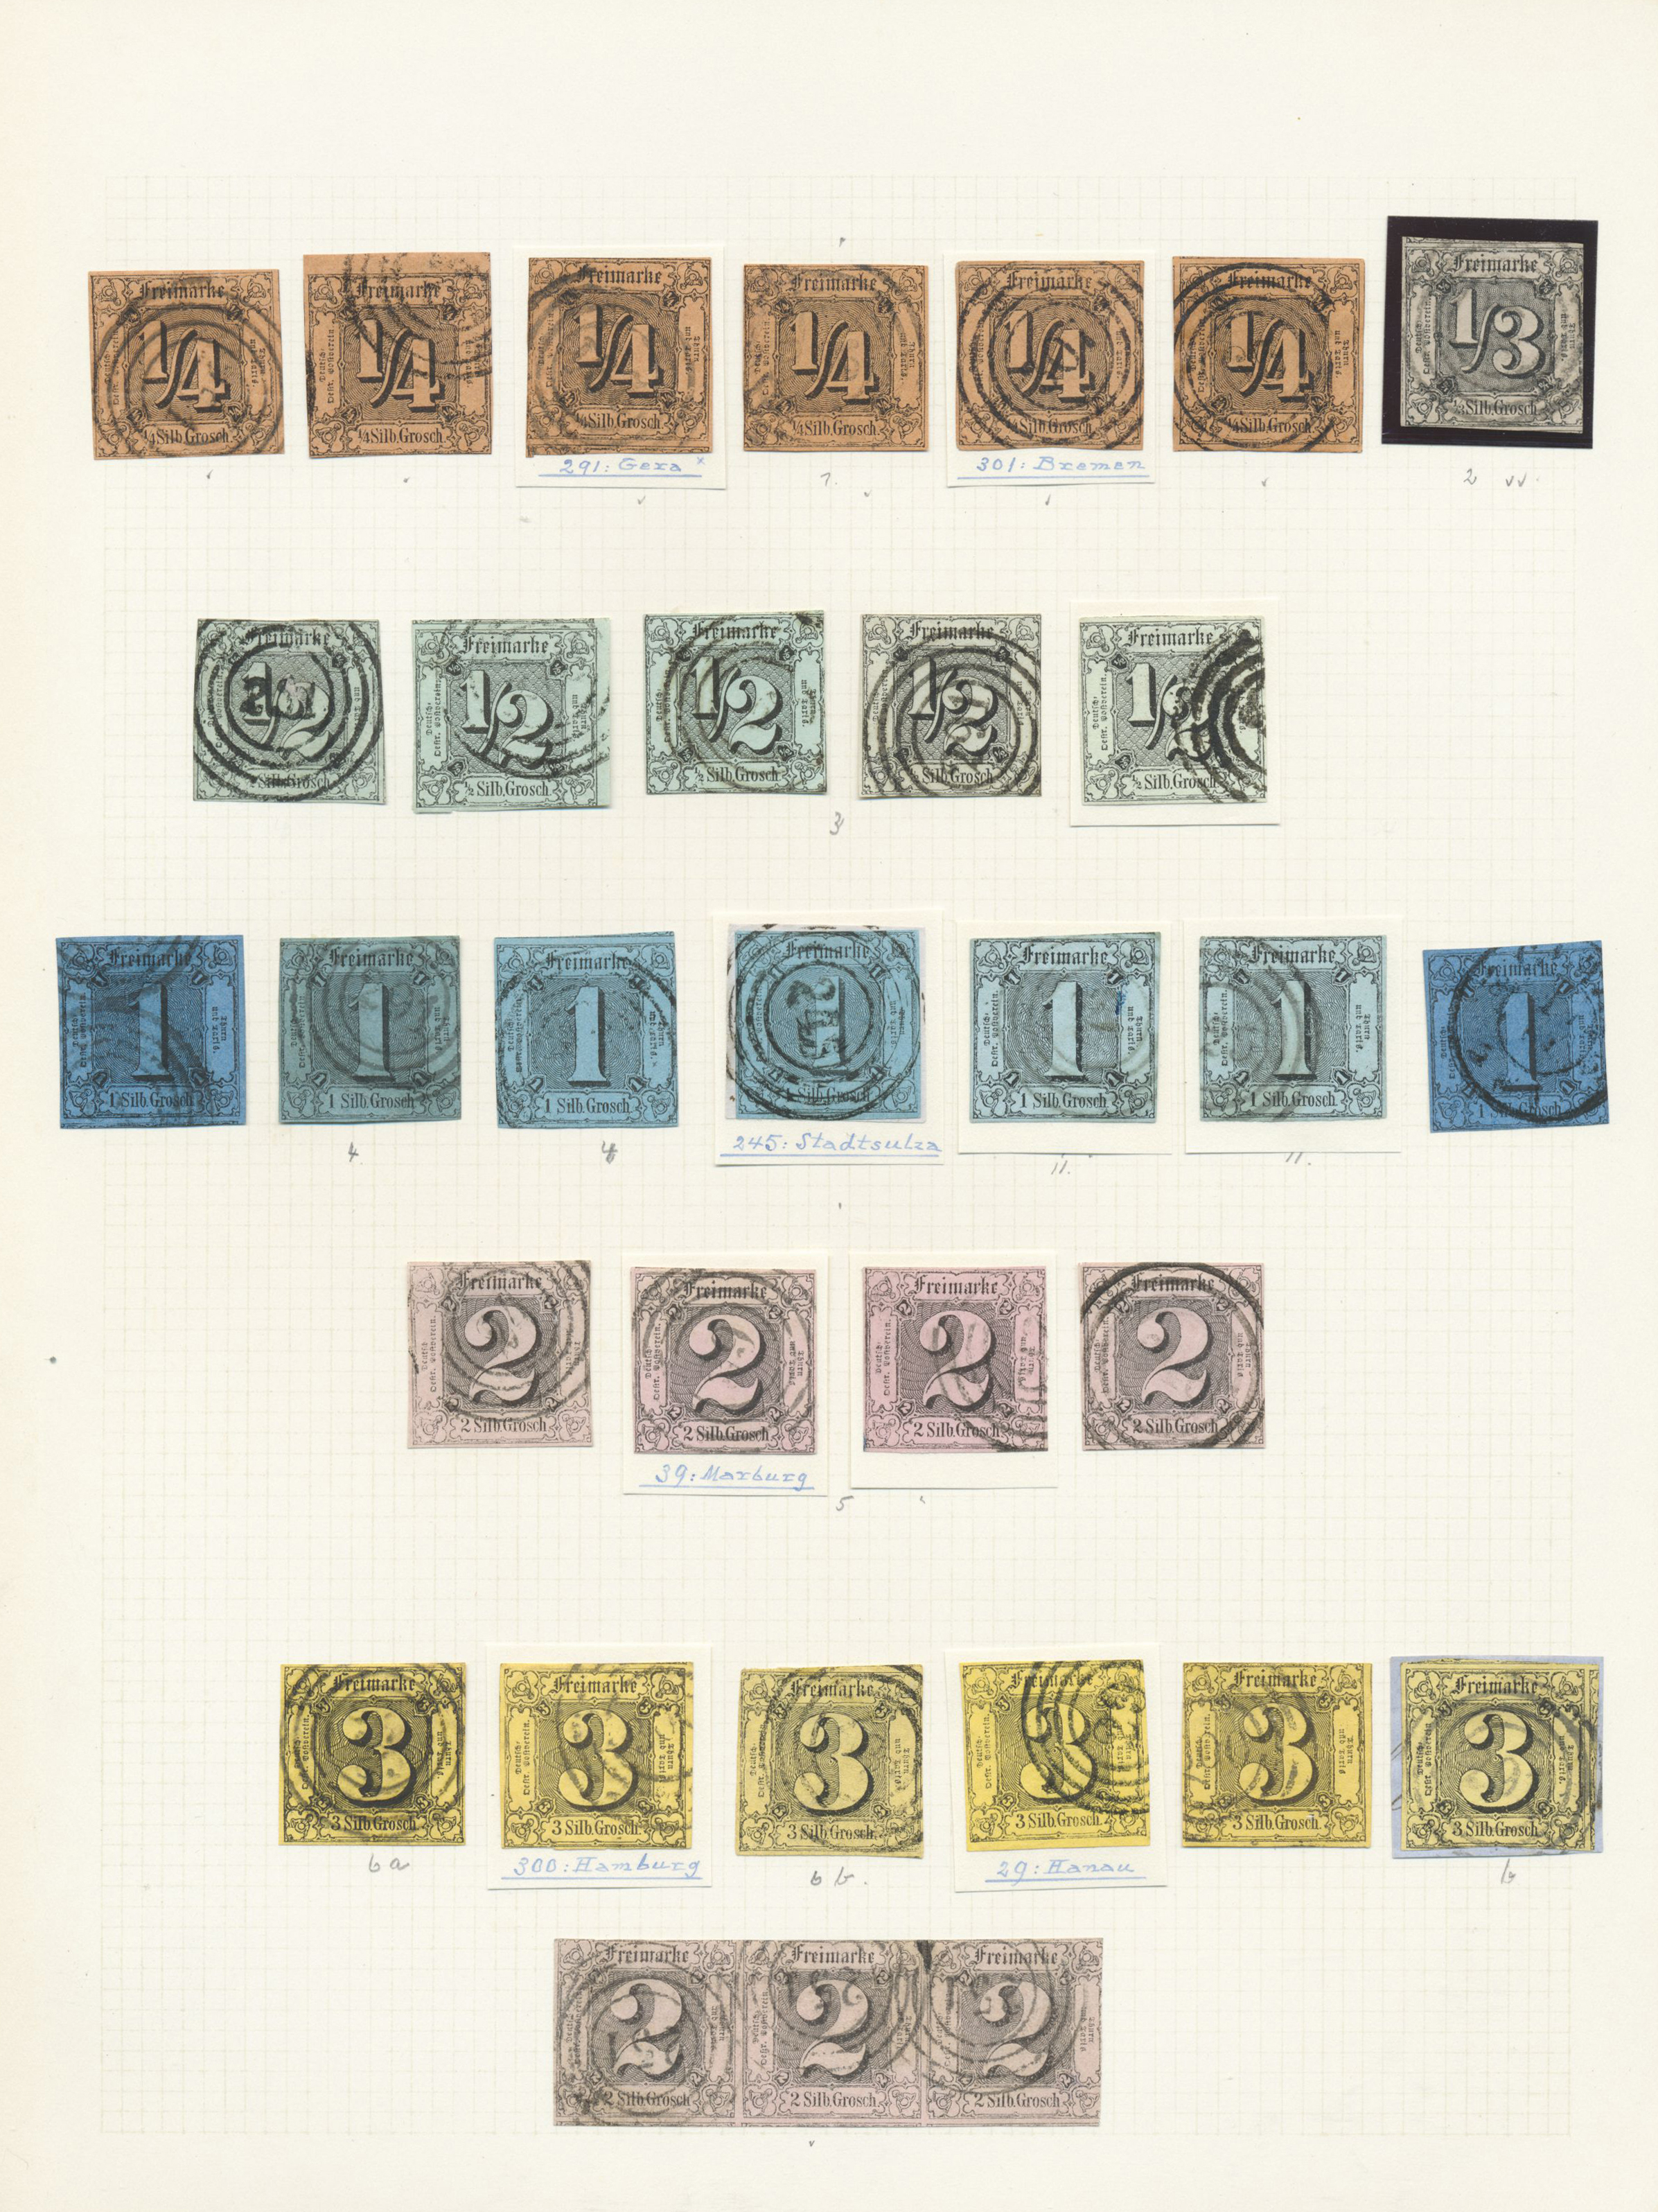 Lot 36491 - Thurn & Taxis - Marken und Briefe  -  Auktionshaus Christoph Gärtner GmbH & Co. KG Collections Germany,  Collections Supplement, Surprise boxes #39 Day 7